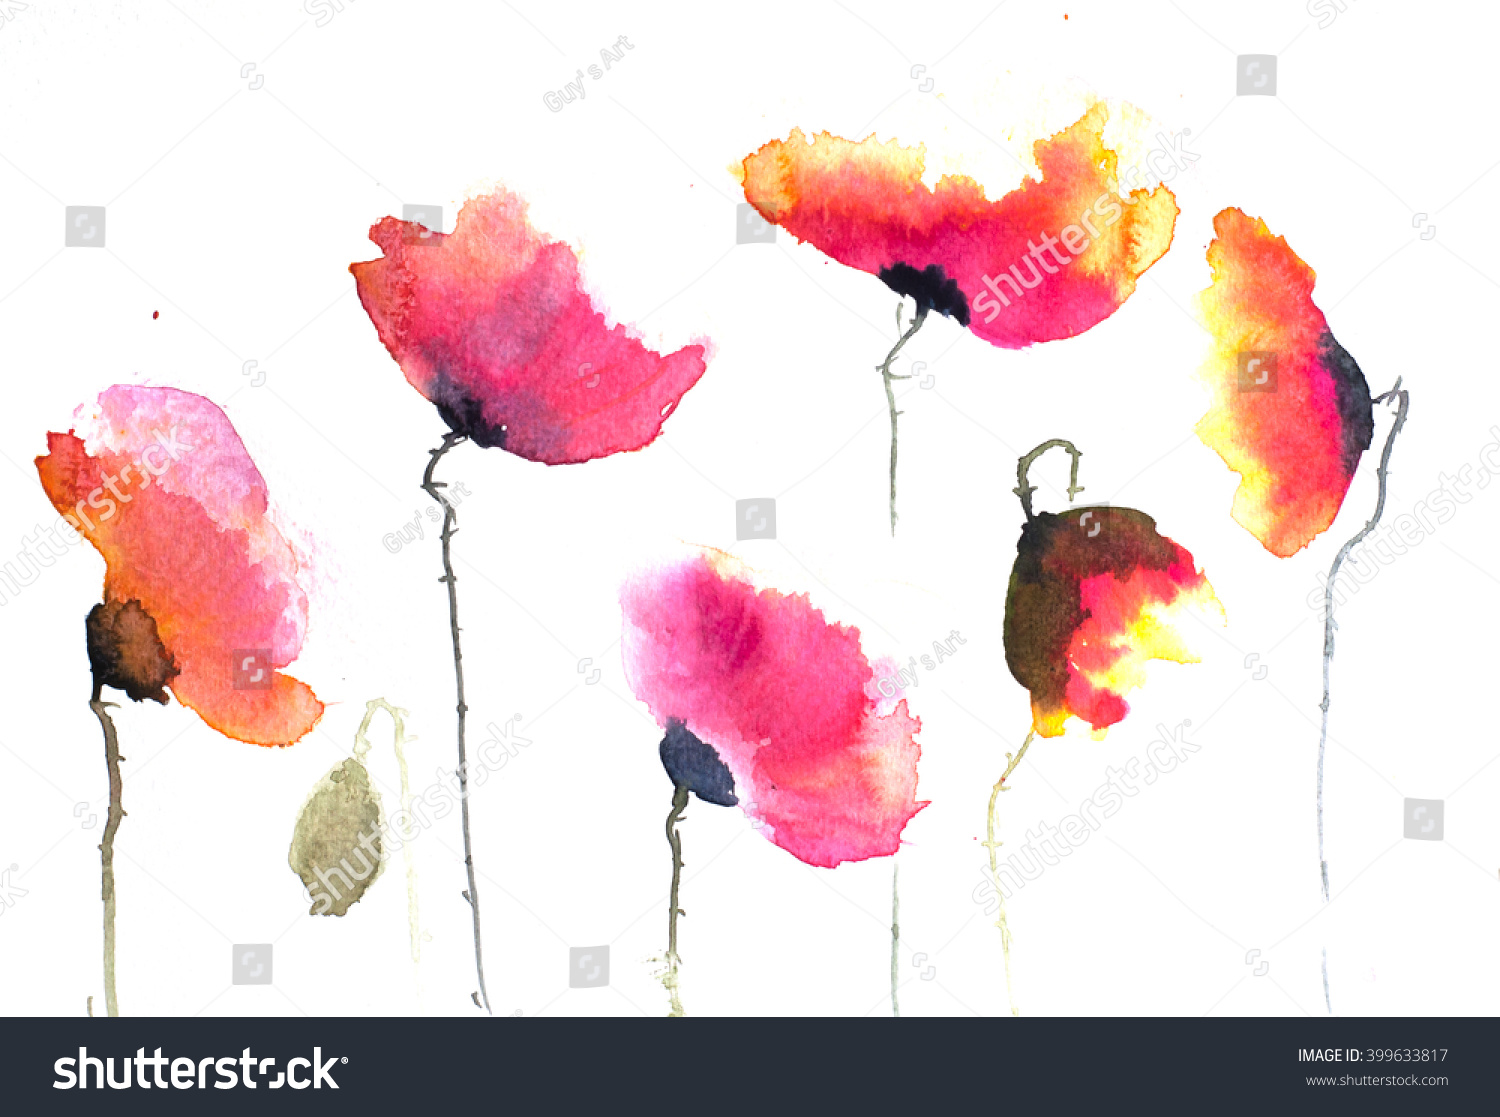 Red Poppy Flower Watercolor Hand Painted On White Paper Ez Canvas